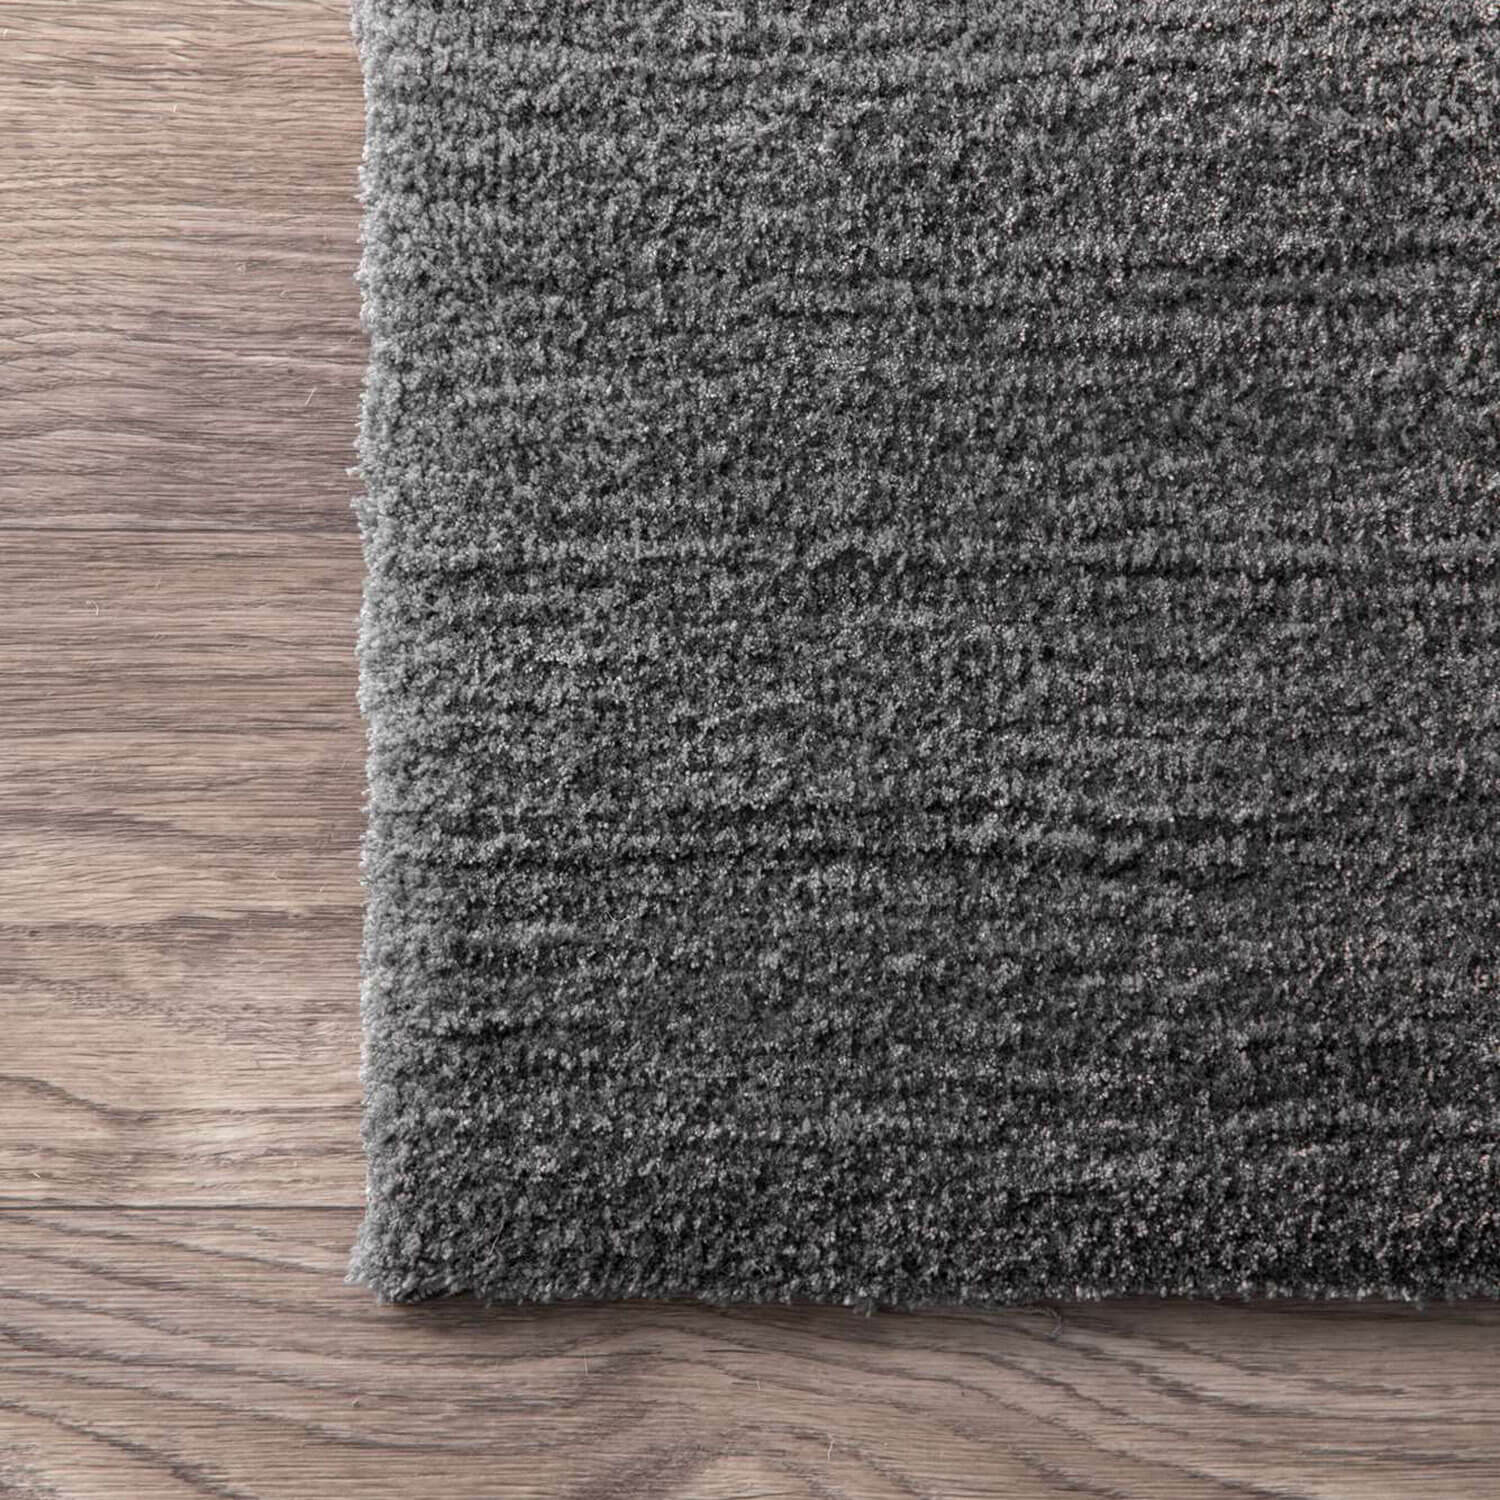 Grey Ombre Area Rug - 2' 6